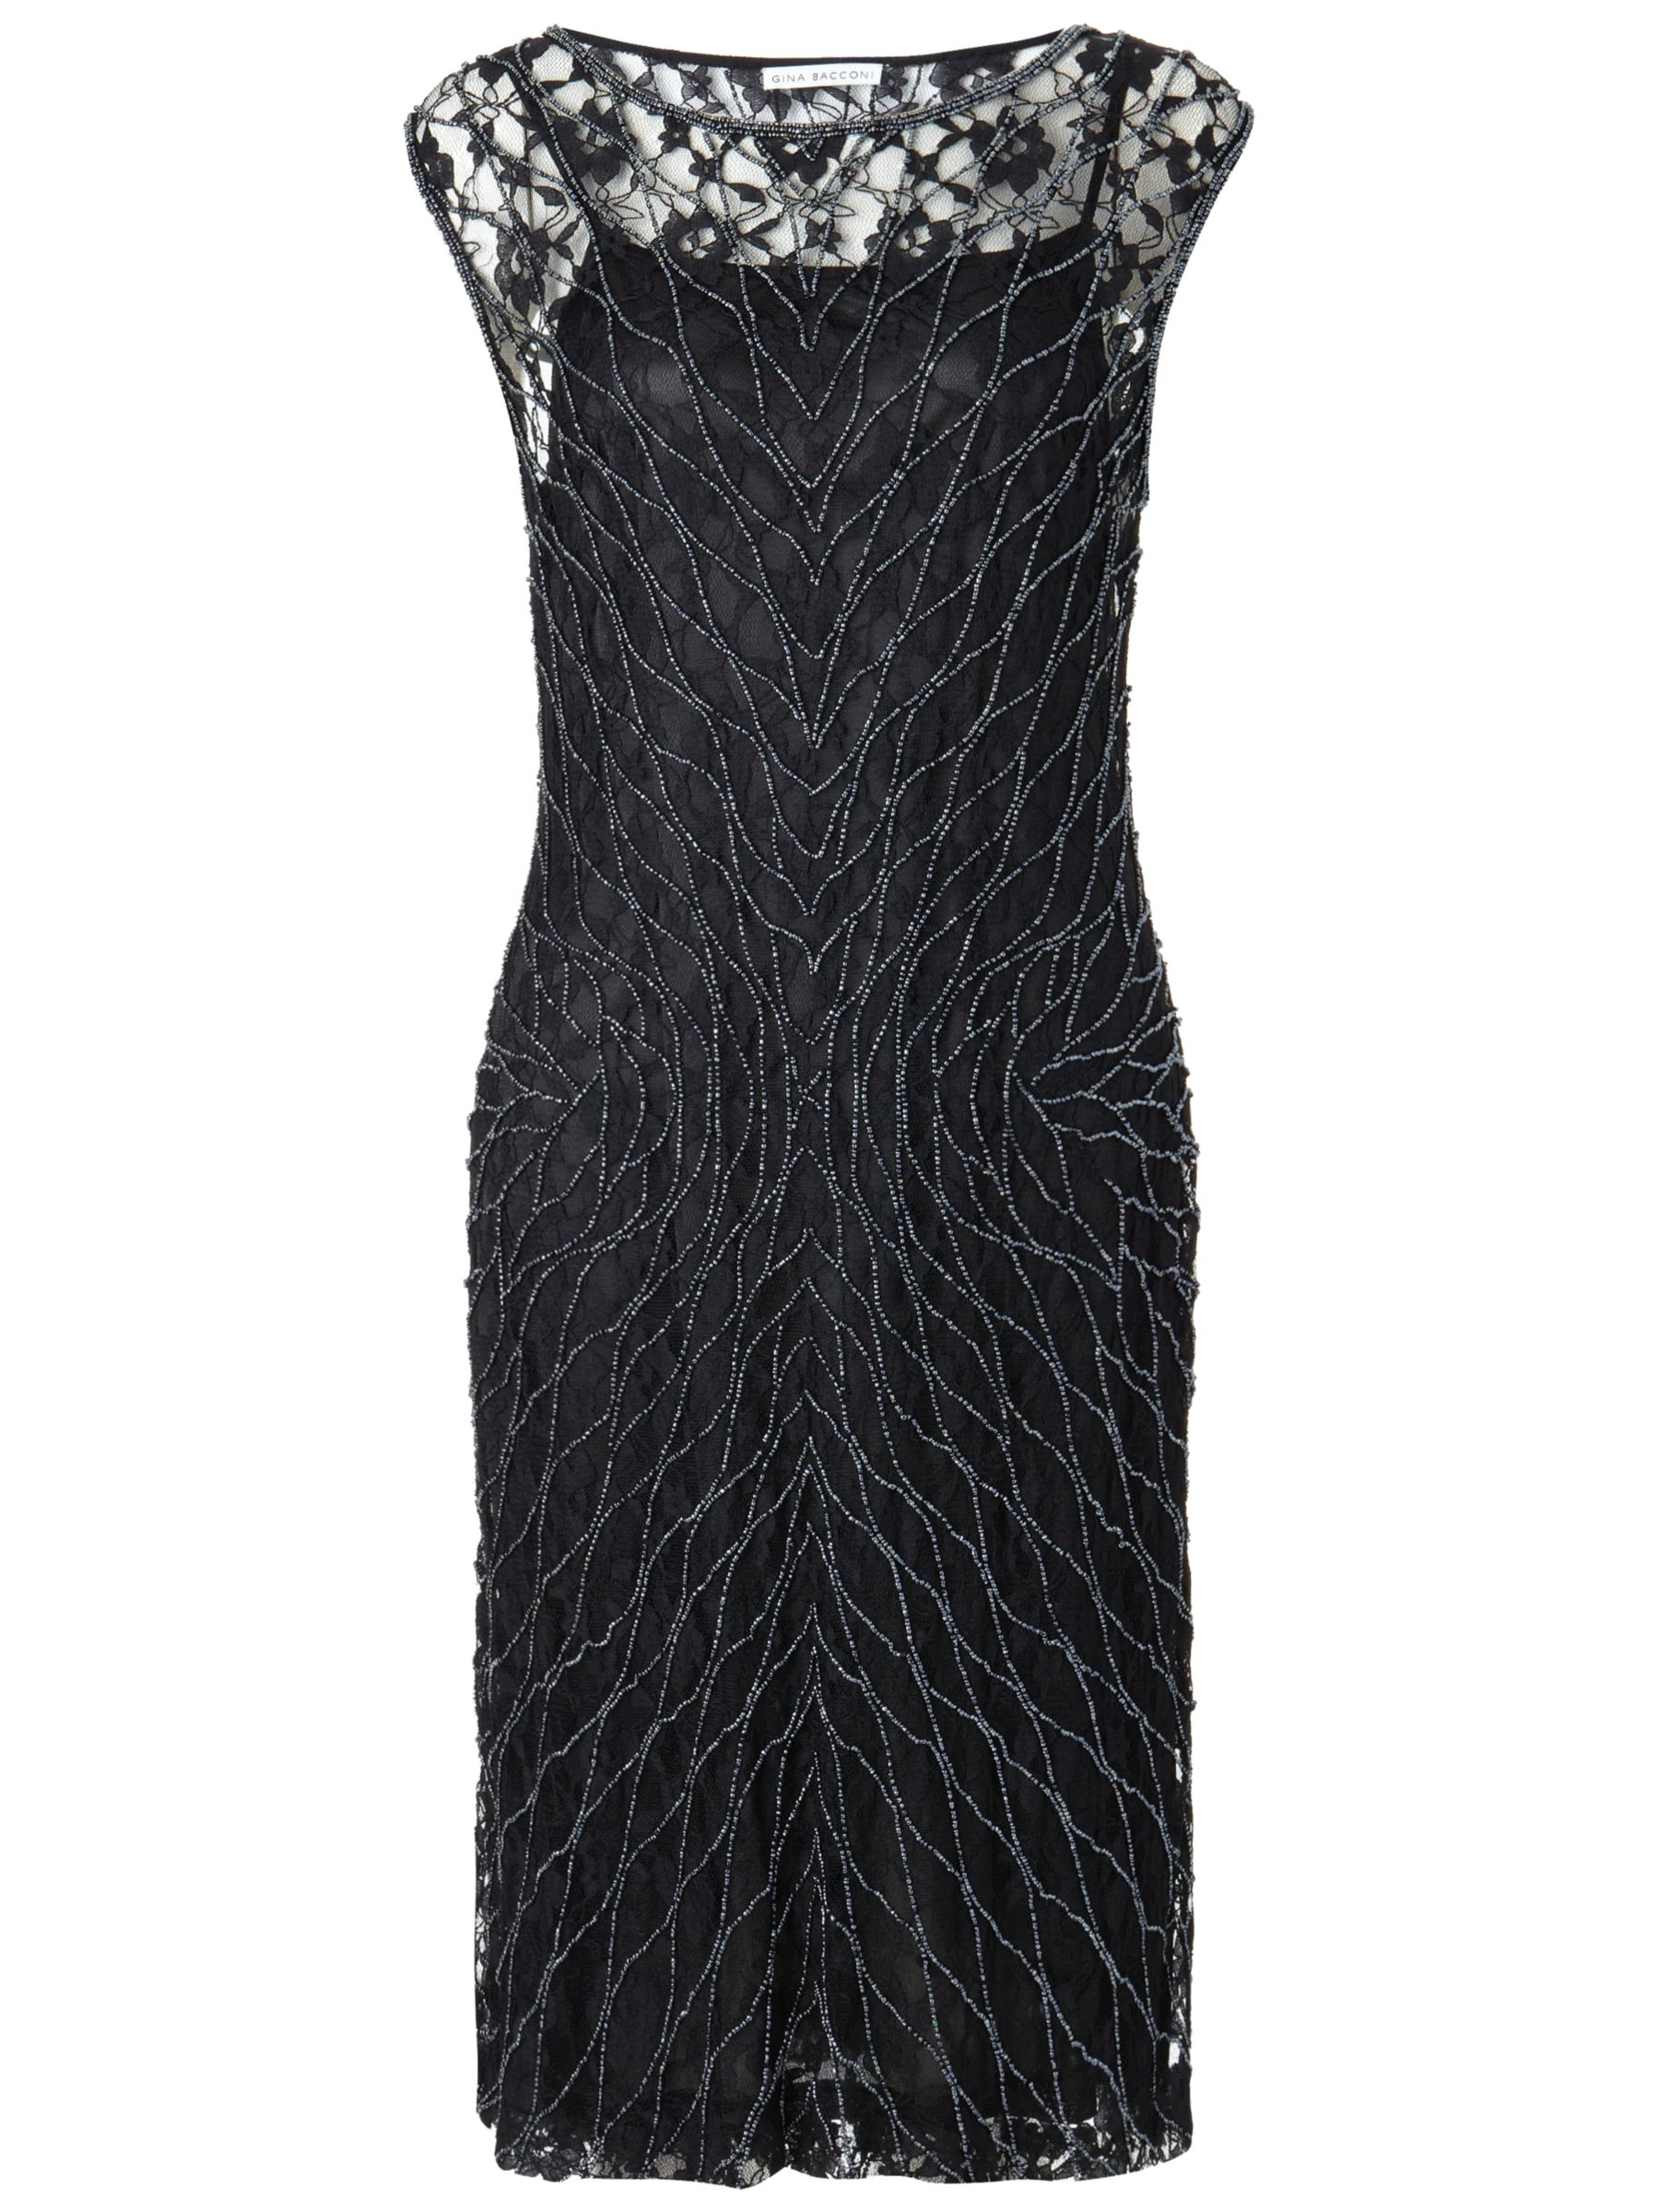 Gina Bacconi Beaded Lace Dress, Black